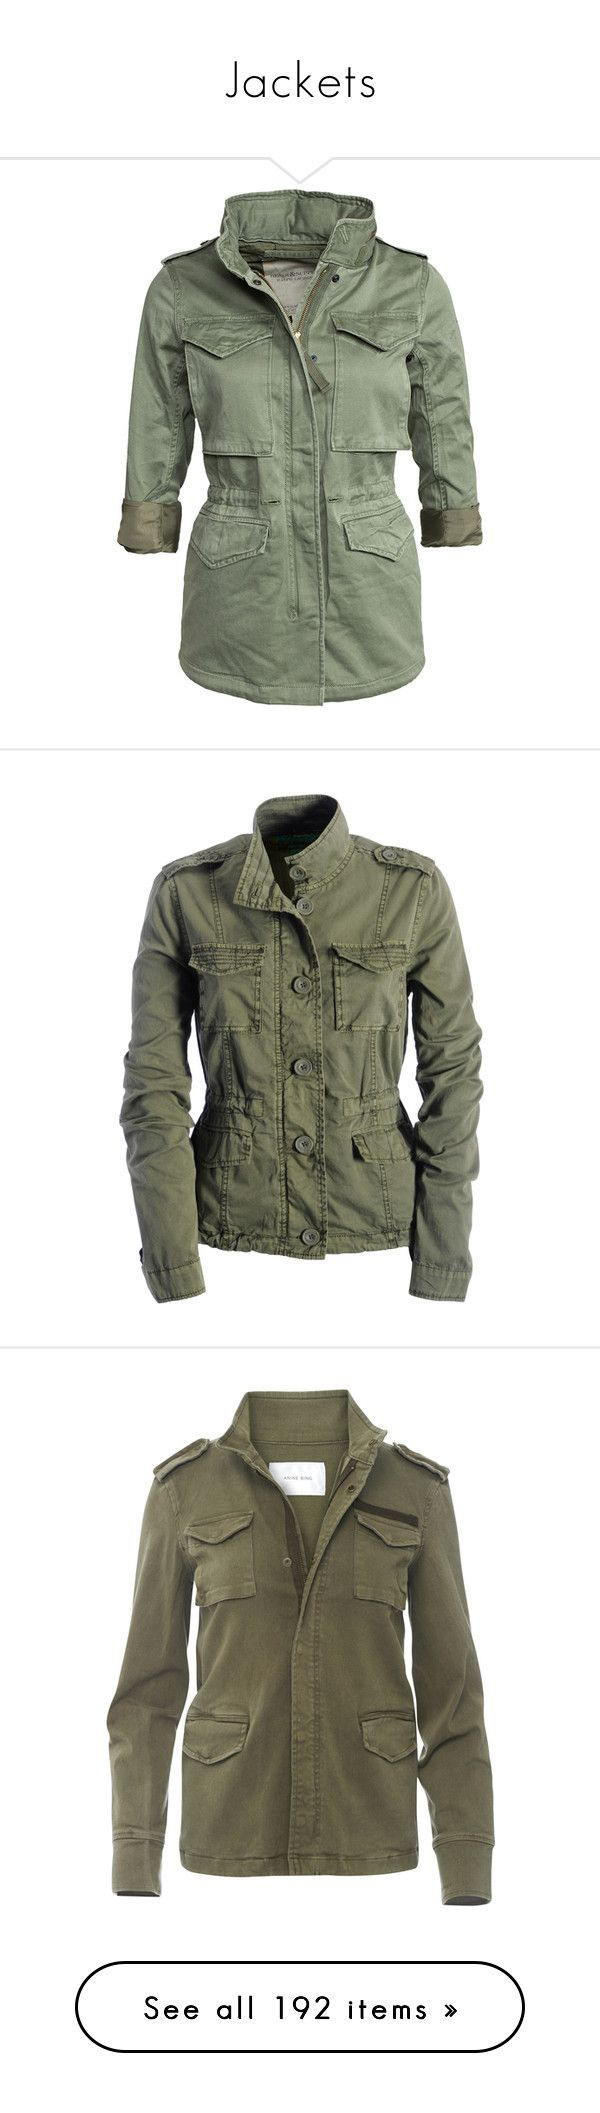 """""""Jackets"""" by mrseclipse ❤ liked on Polyvore featuring outerwear, jackets, tops, coats, army olive, womens-fashion, zipper jacket, green military jacket, olive green army jacket and army green jacket"""